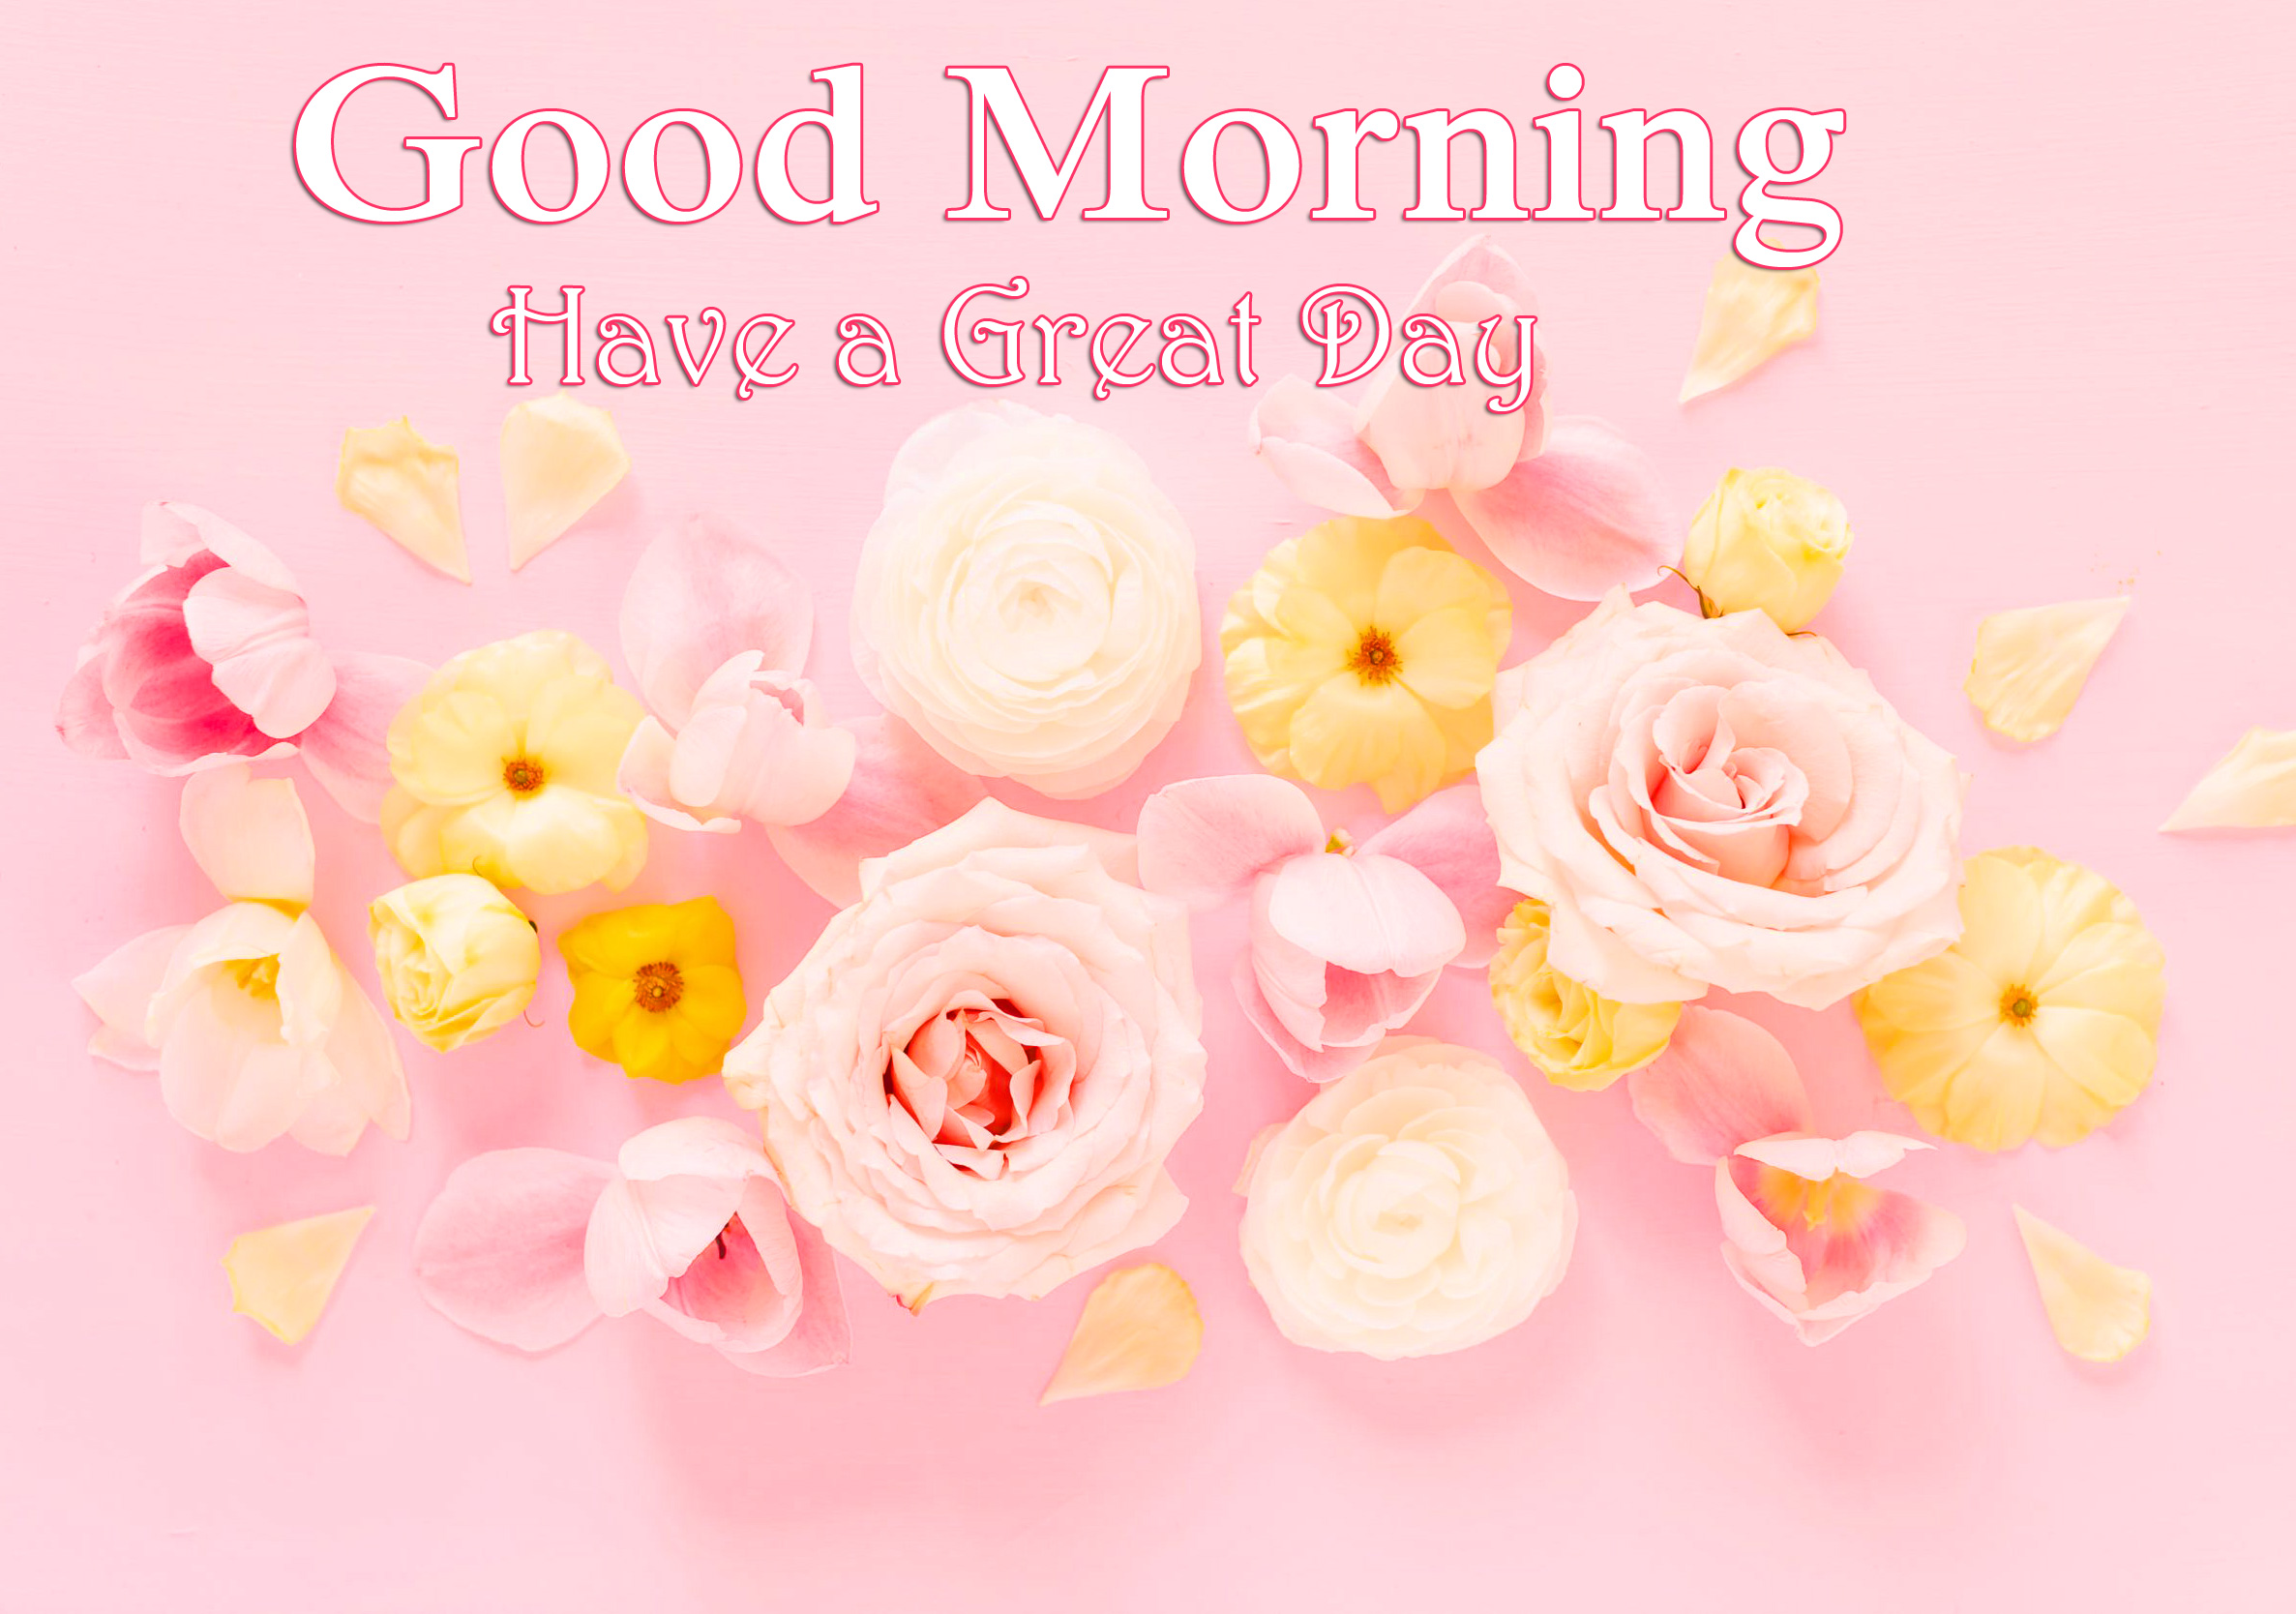 Flowers Pink Good Morning Have a Great Day Wallpaper